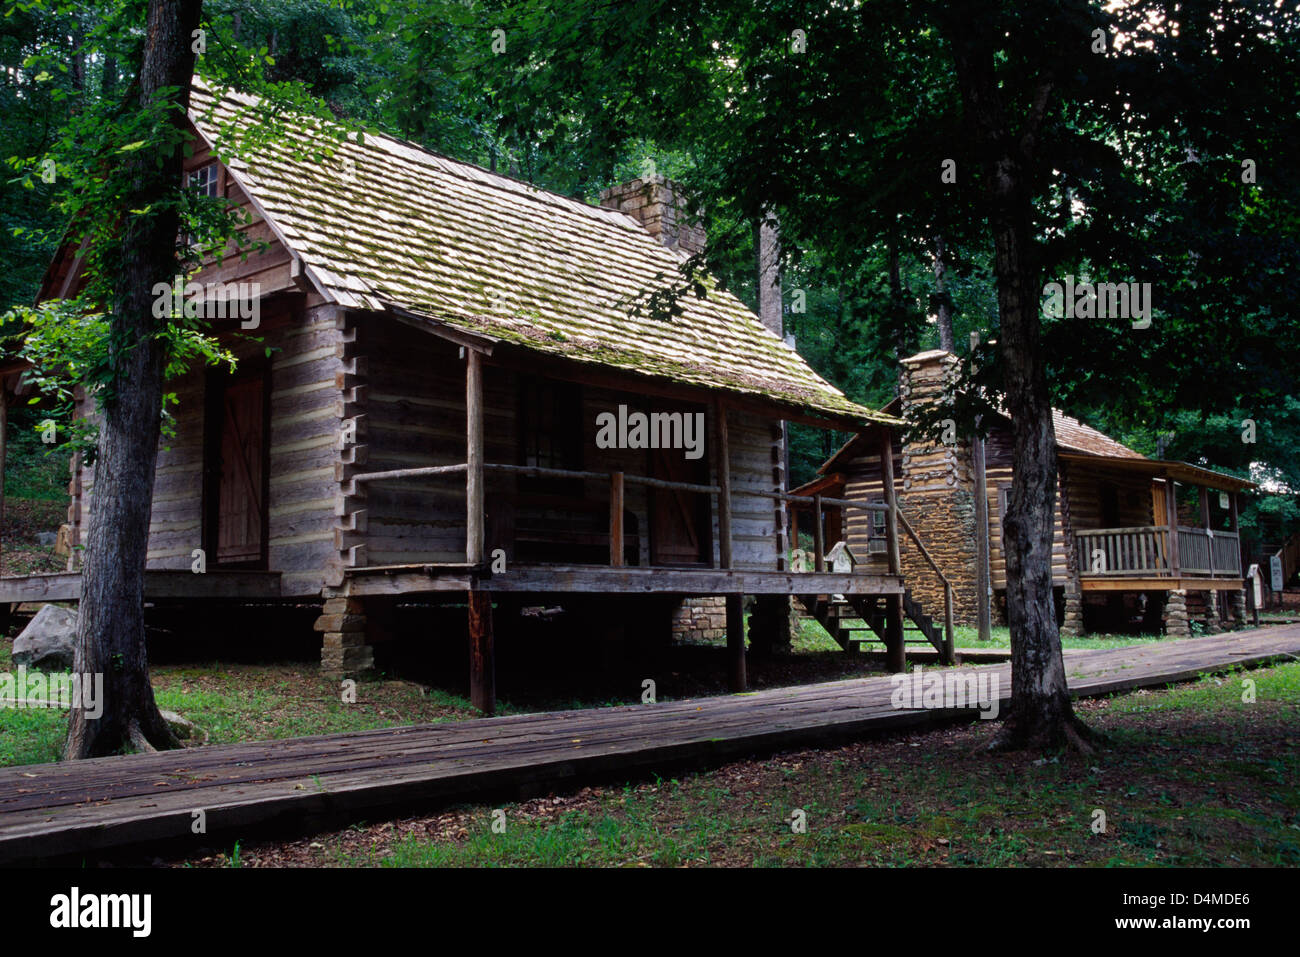 state index are ssf cabins living blakeley com log alabama ne new in s al park parks woodsy sibley cabin adorable accessible